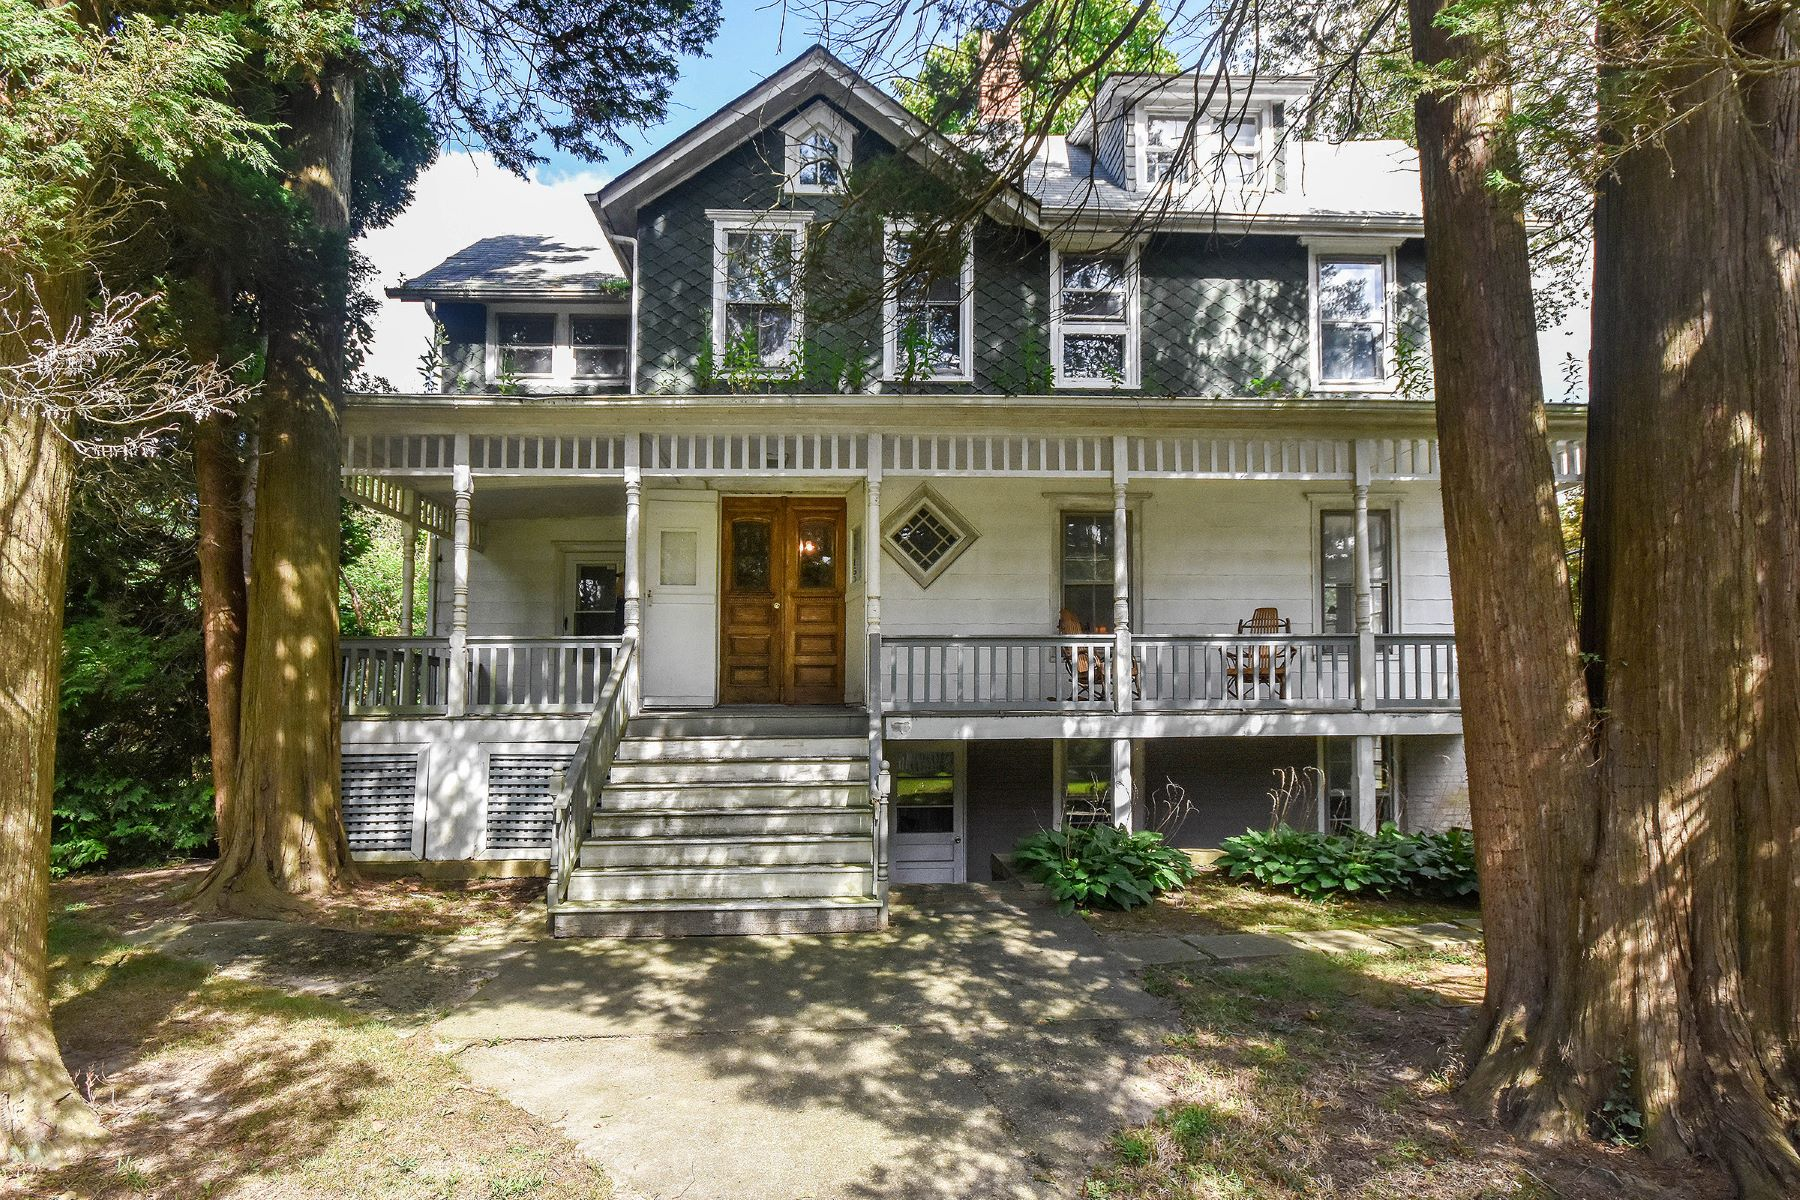 Single Family Homes for Active at Sea Cliff 160 8th Ave Sea Cliff, New York 11579 United States